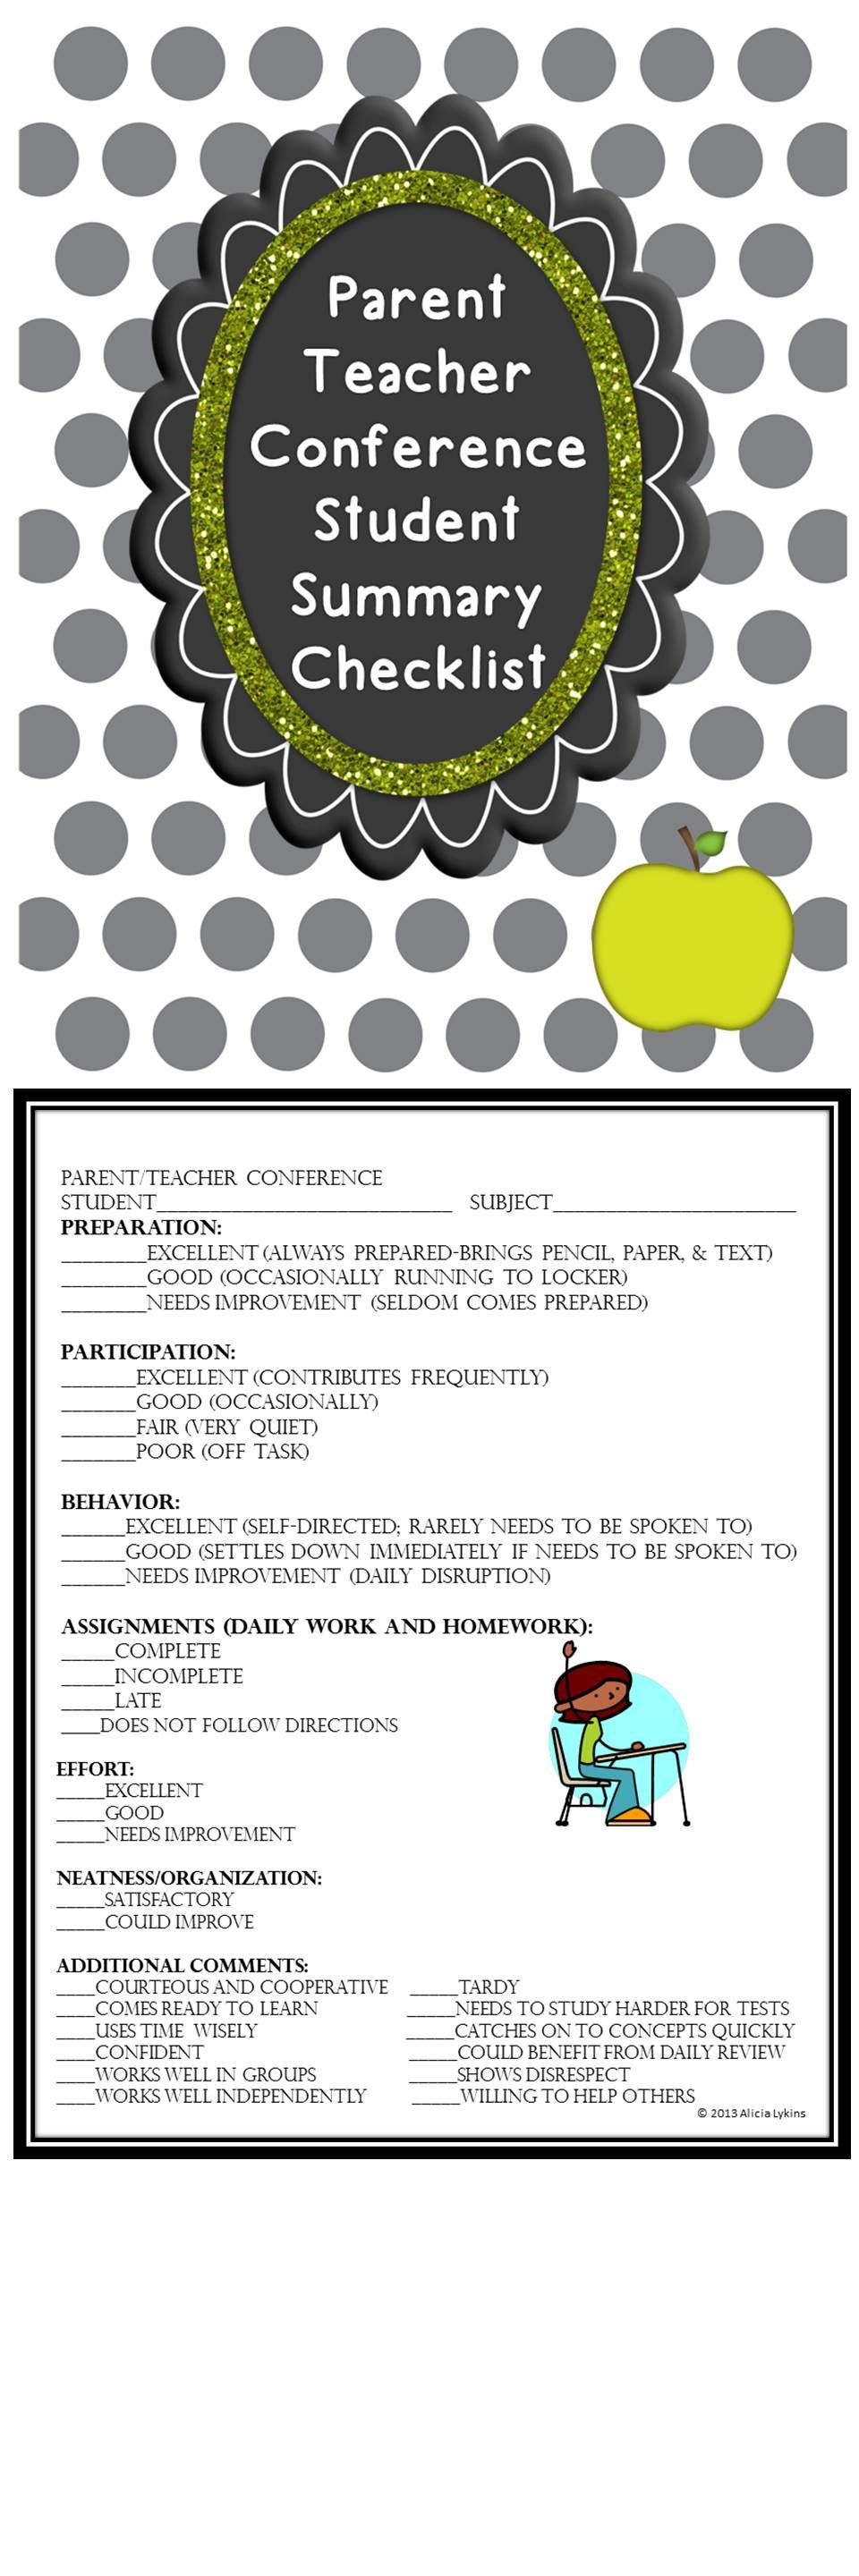 parent teacher conference form checklist for students strengths checklist for students strengths areas for improvement open space to write in test results grades ways fo pinteres